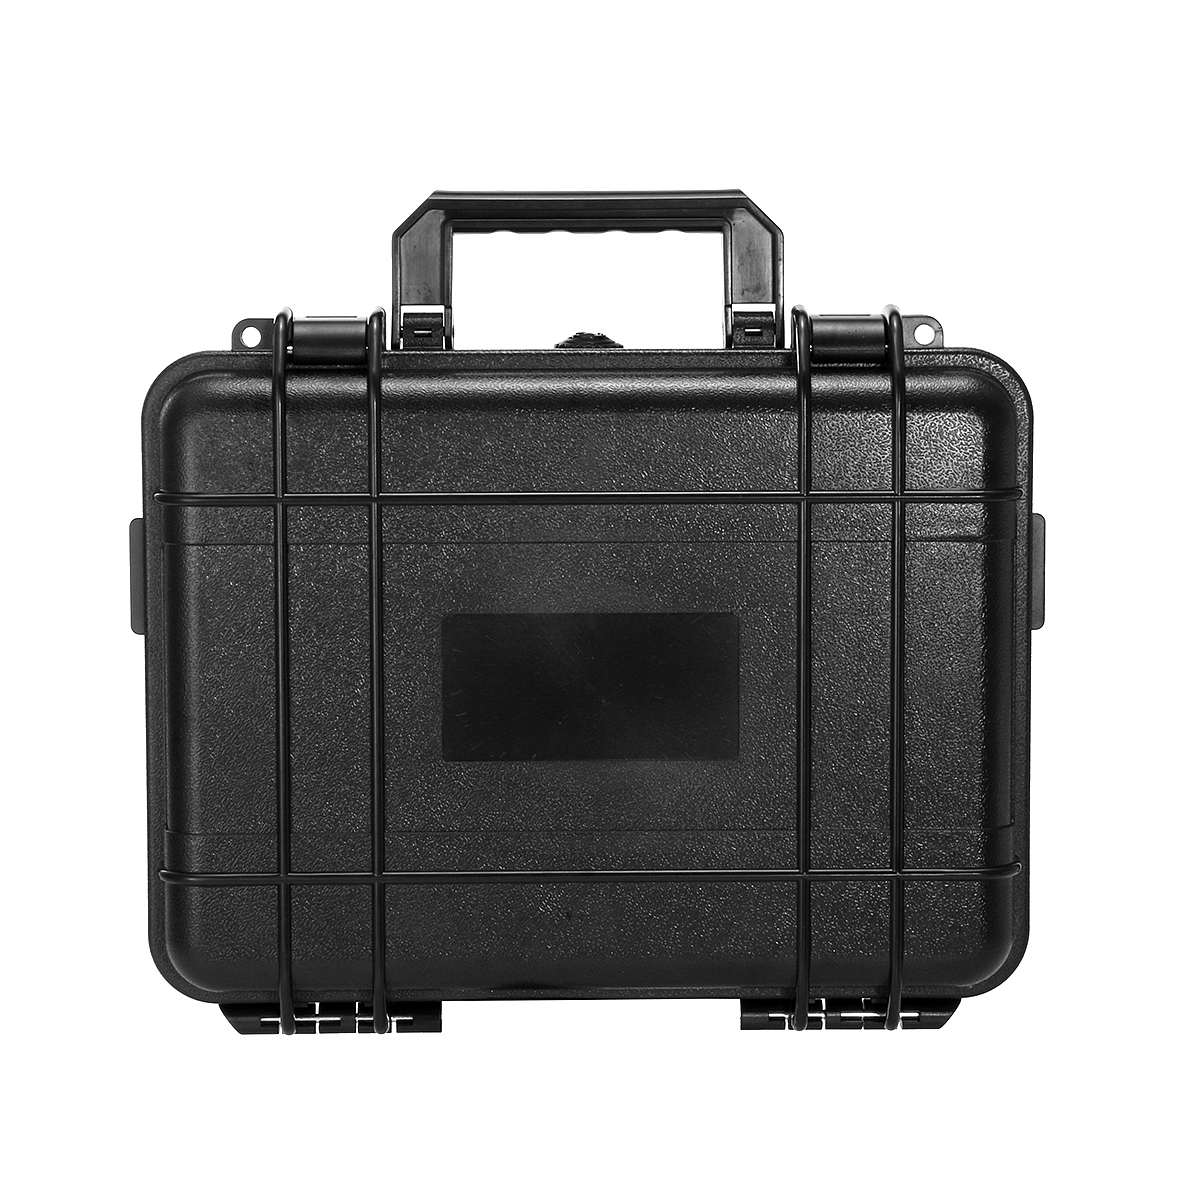 Waterproof Hard Carry Case Plastic Equipment Protective Storage Boxes Hardware Shockproof Toolbox Bag-Tool-Kits Impact Resistant